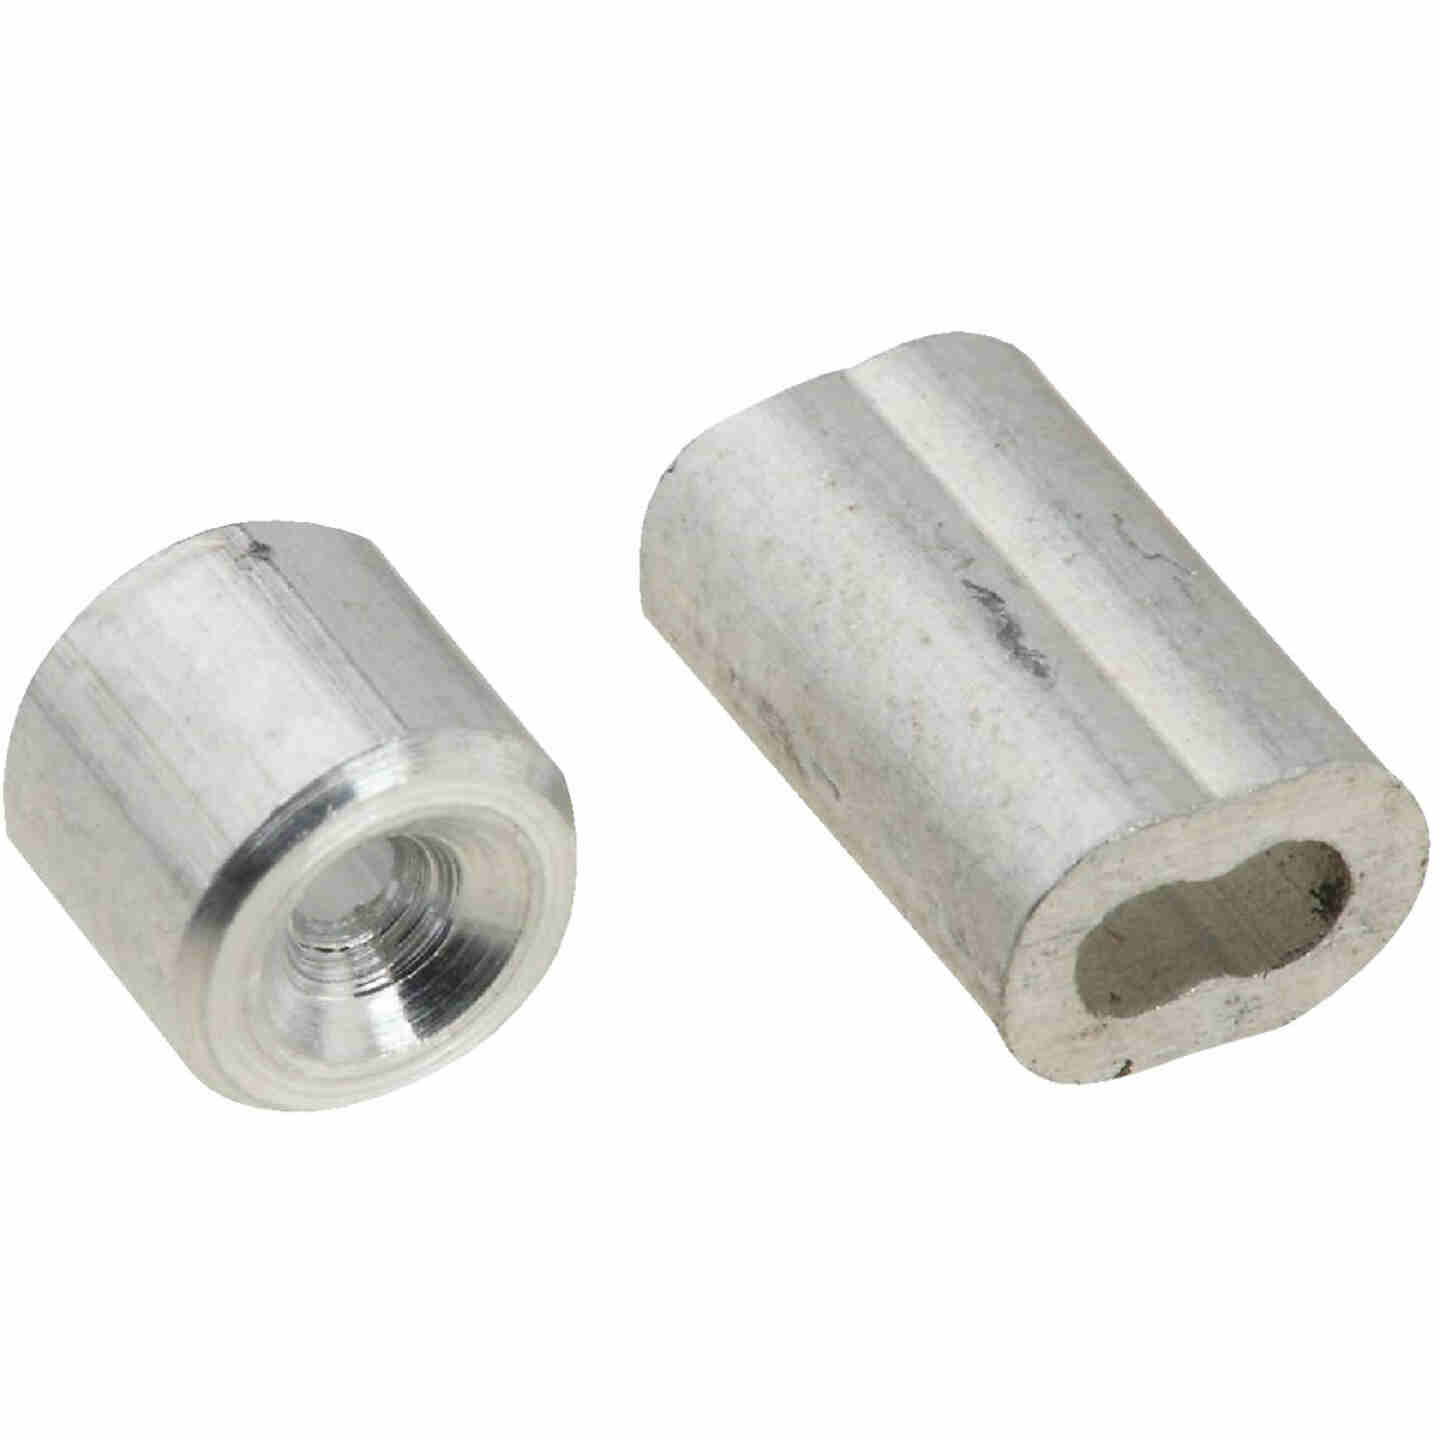 """Prime-Line Cable Ferrules And Stops, 1/16"""", Aluminum Image 1"""